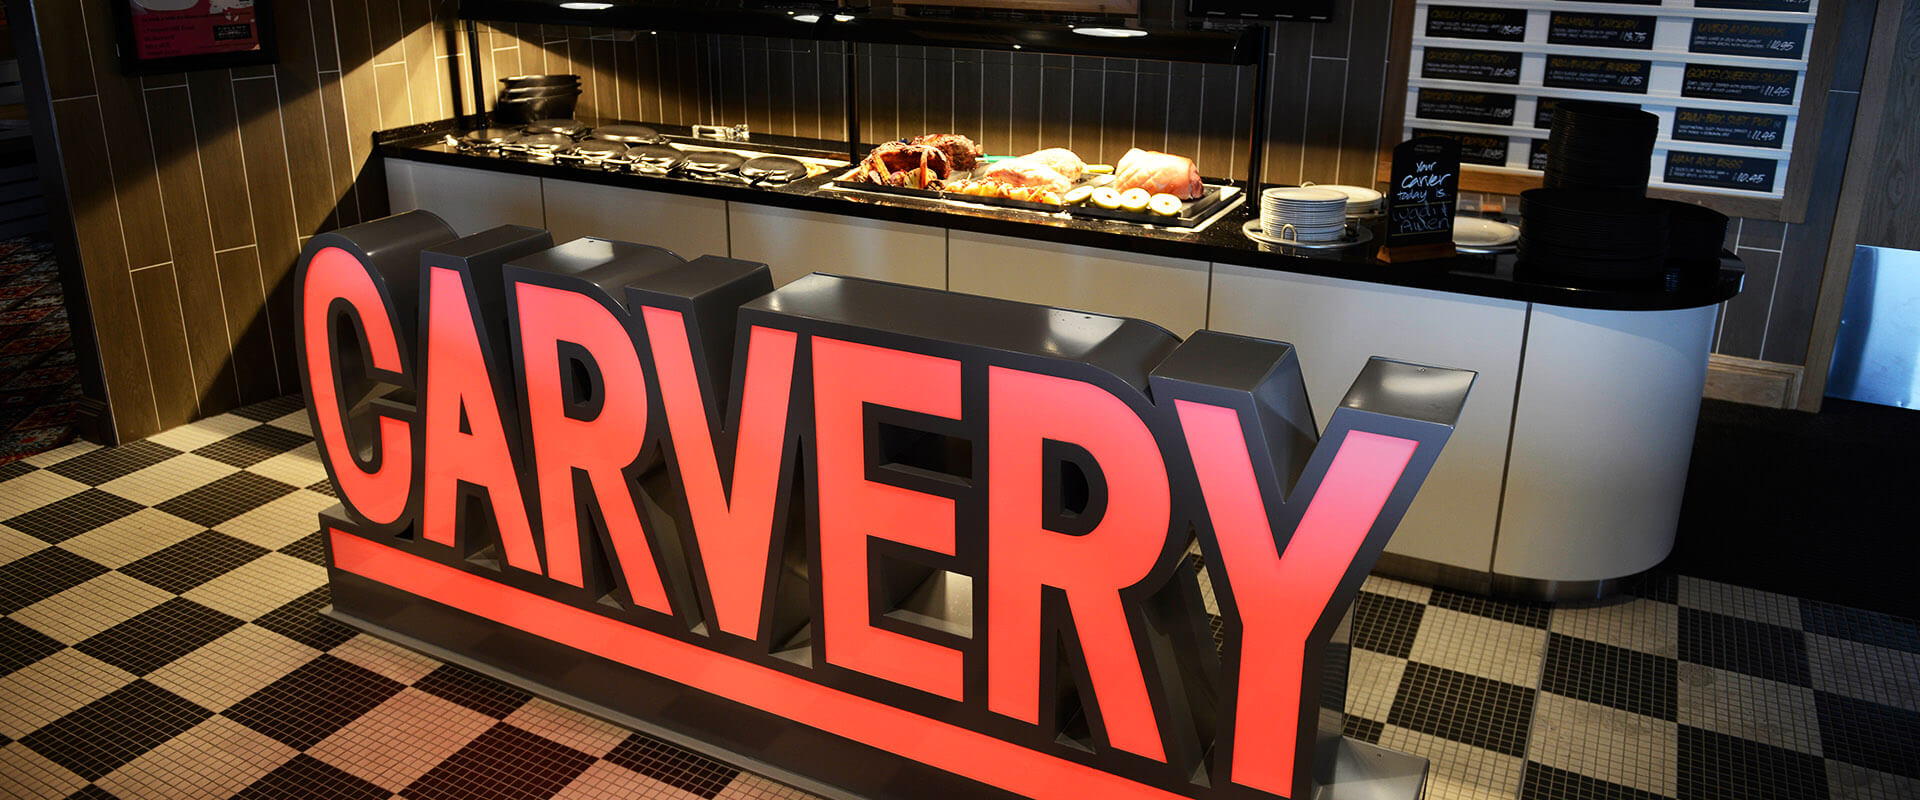 carvery-banner